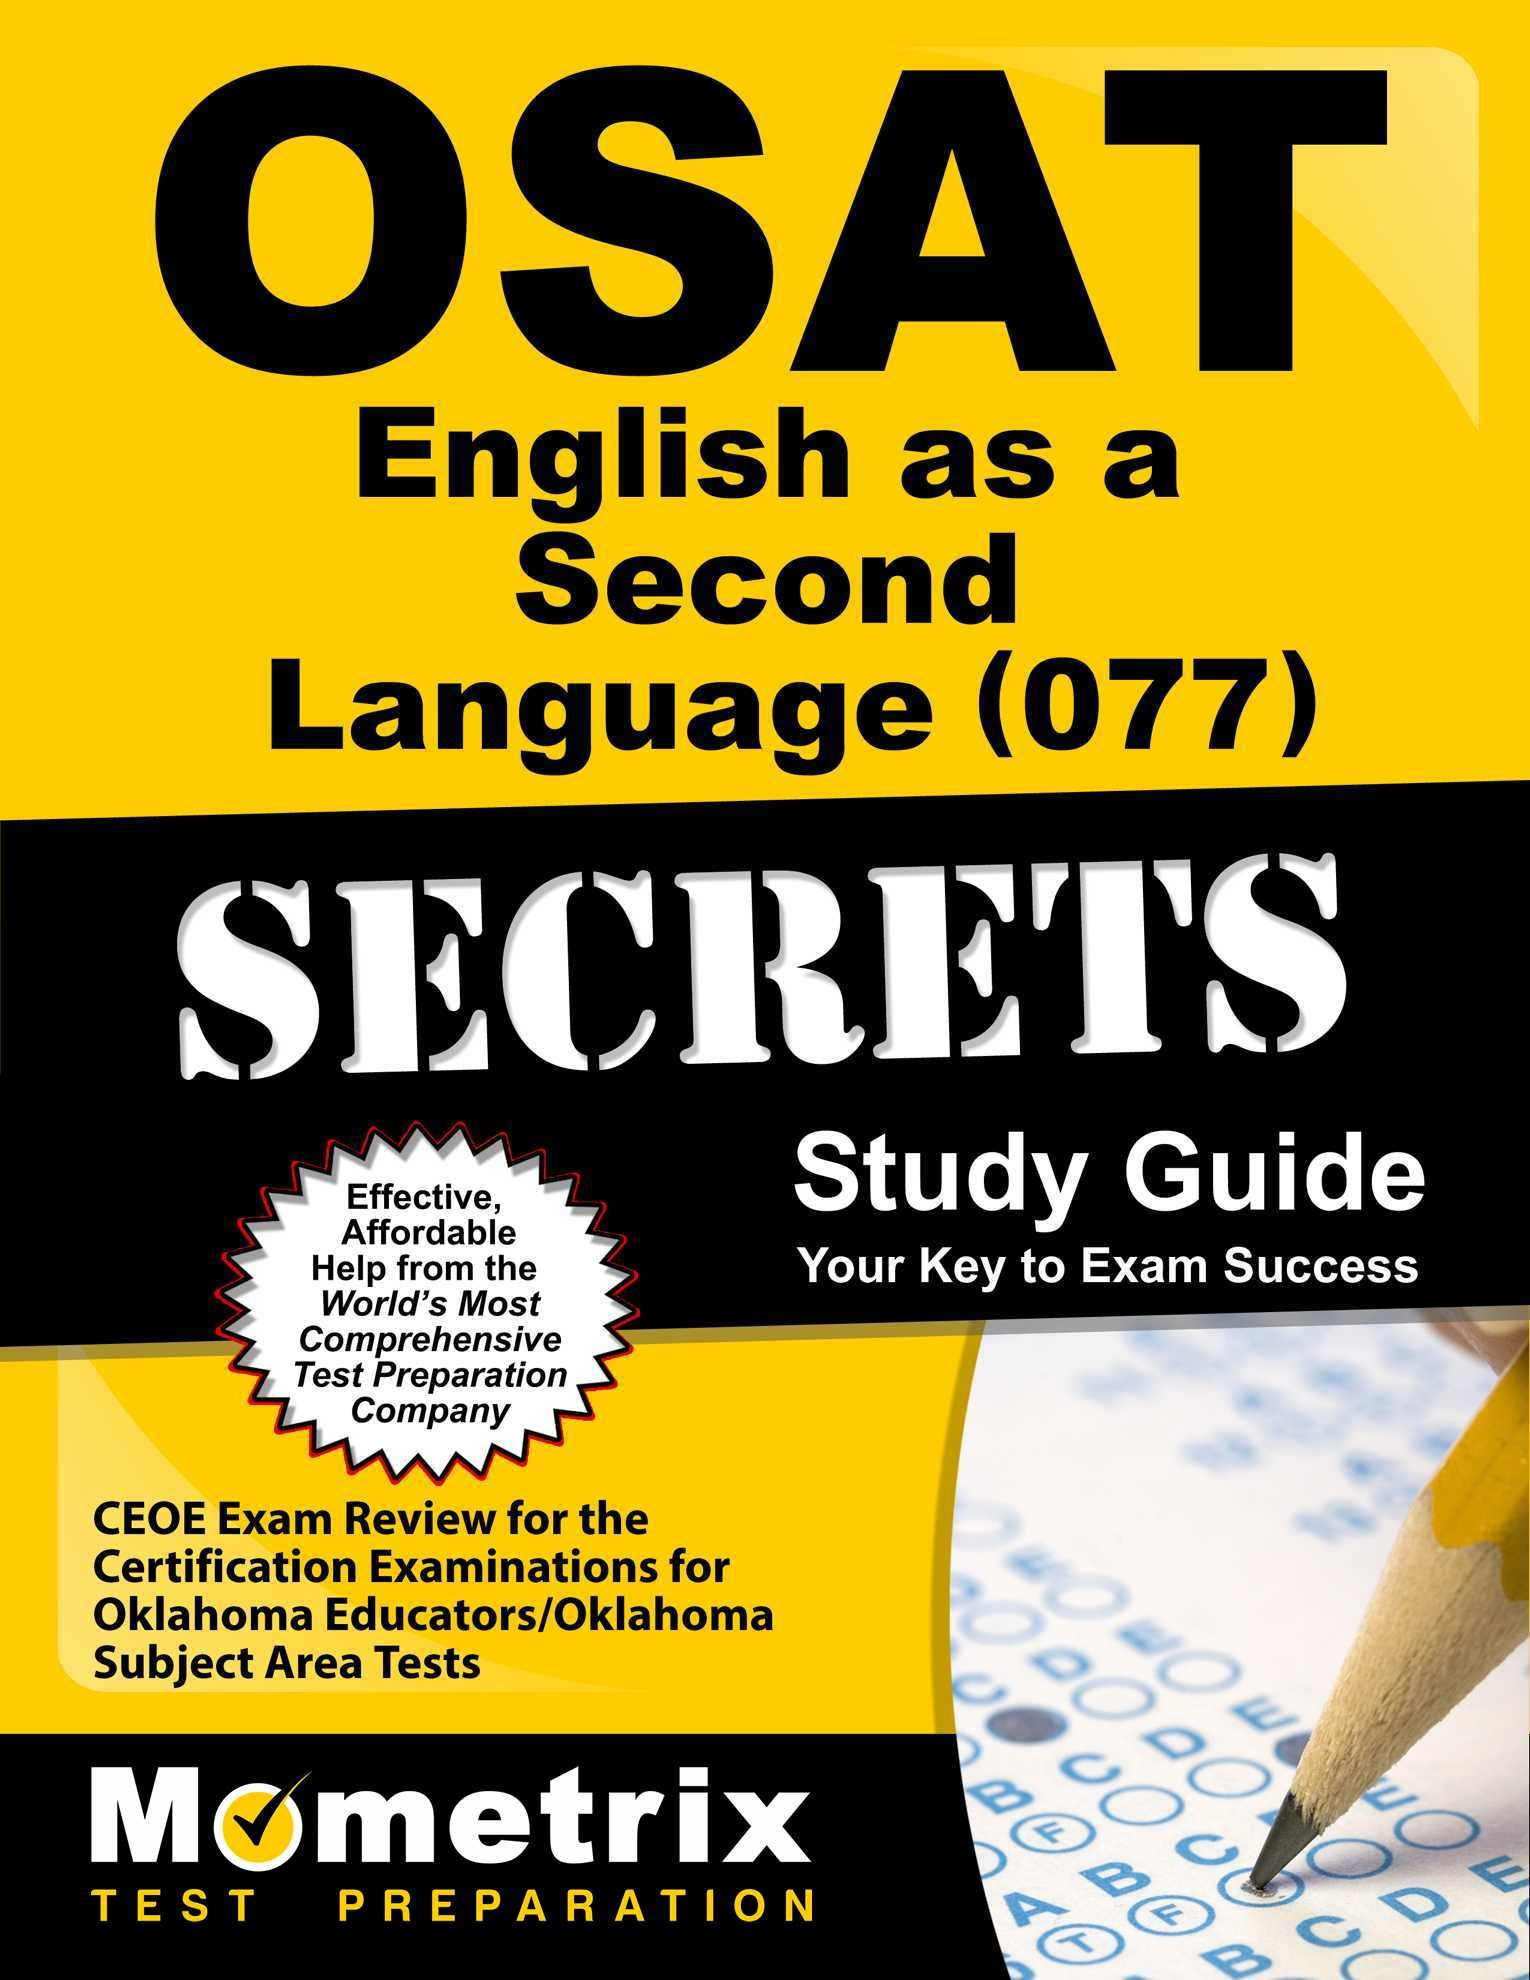 OSAT English as a Second Language (077) Secrets Study Guide: CEOE Exam Review for the Certification Examinations for Oklahoma Educators/Oklahoma Subject Area Tests by Mometrix Media LLC